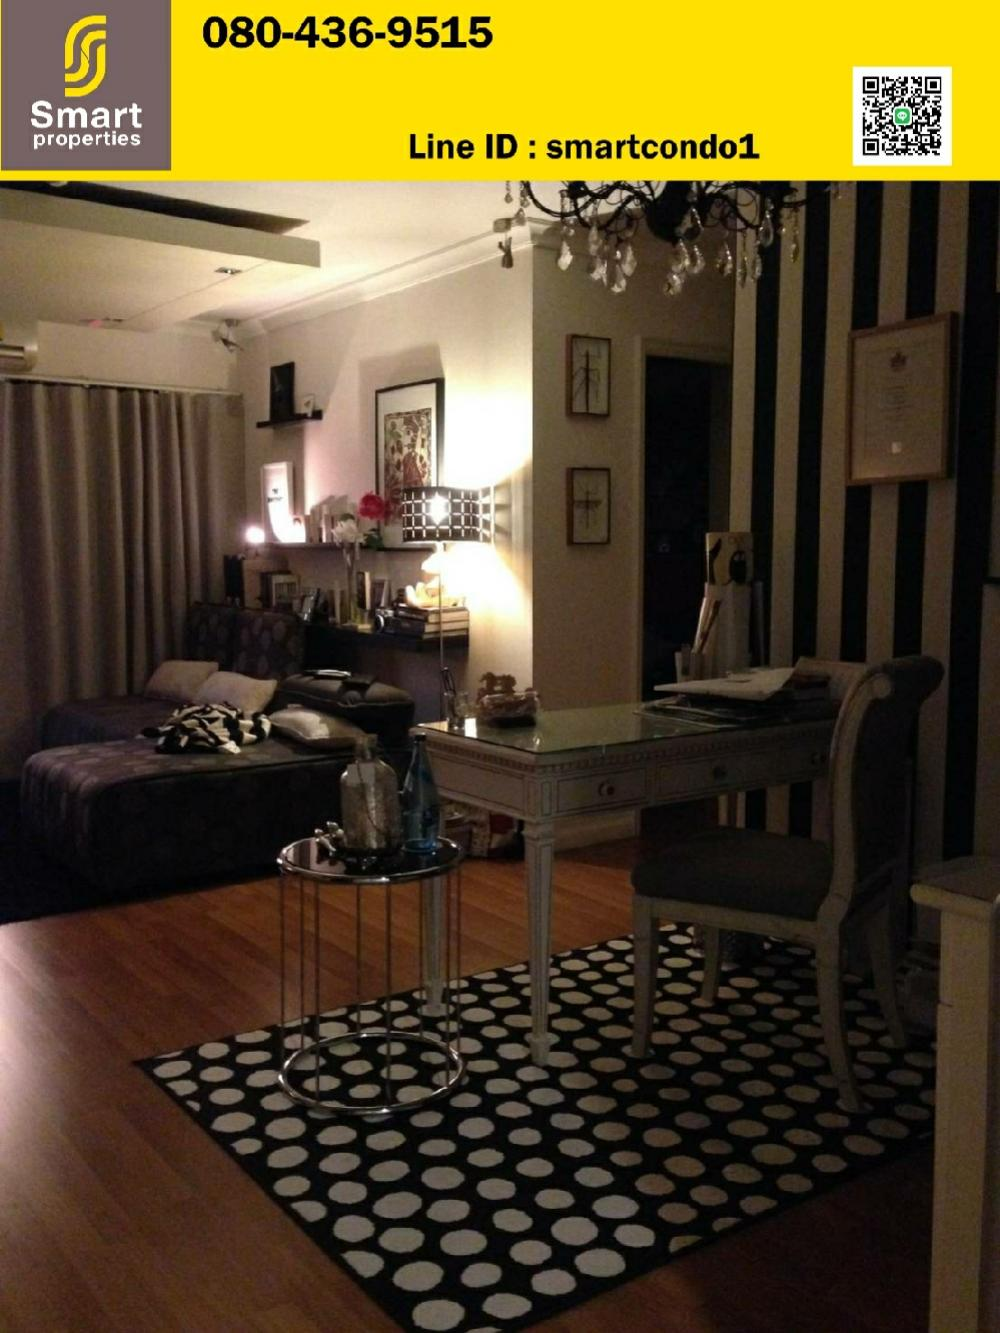 For SaleCondoRama3 (Riverside),Satupadit : Condo for sale Lumpini Place Narathiwat-Chaopraya 2 bedrooms, 2 bathrooms, 65 sq m, 24th floor, building C ** river view **, beautiful decoration, fully furnished, ready to move in.